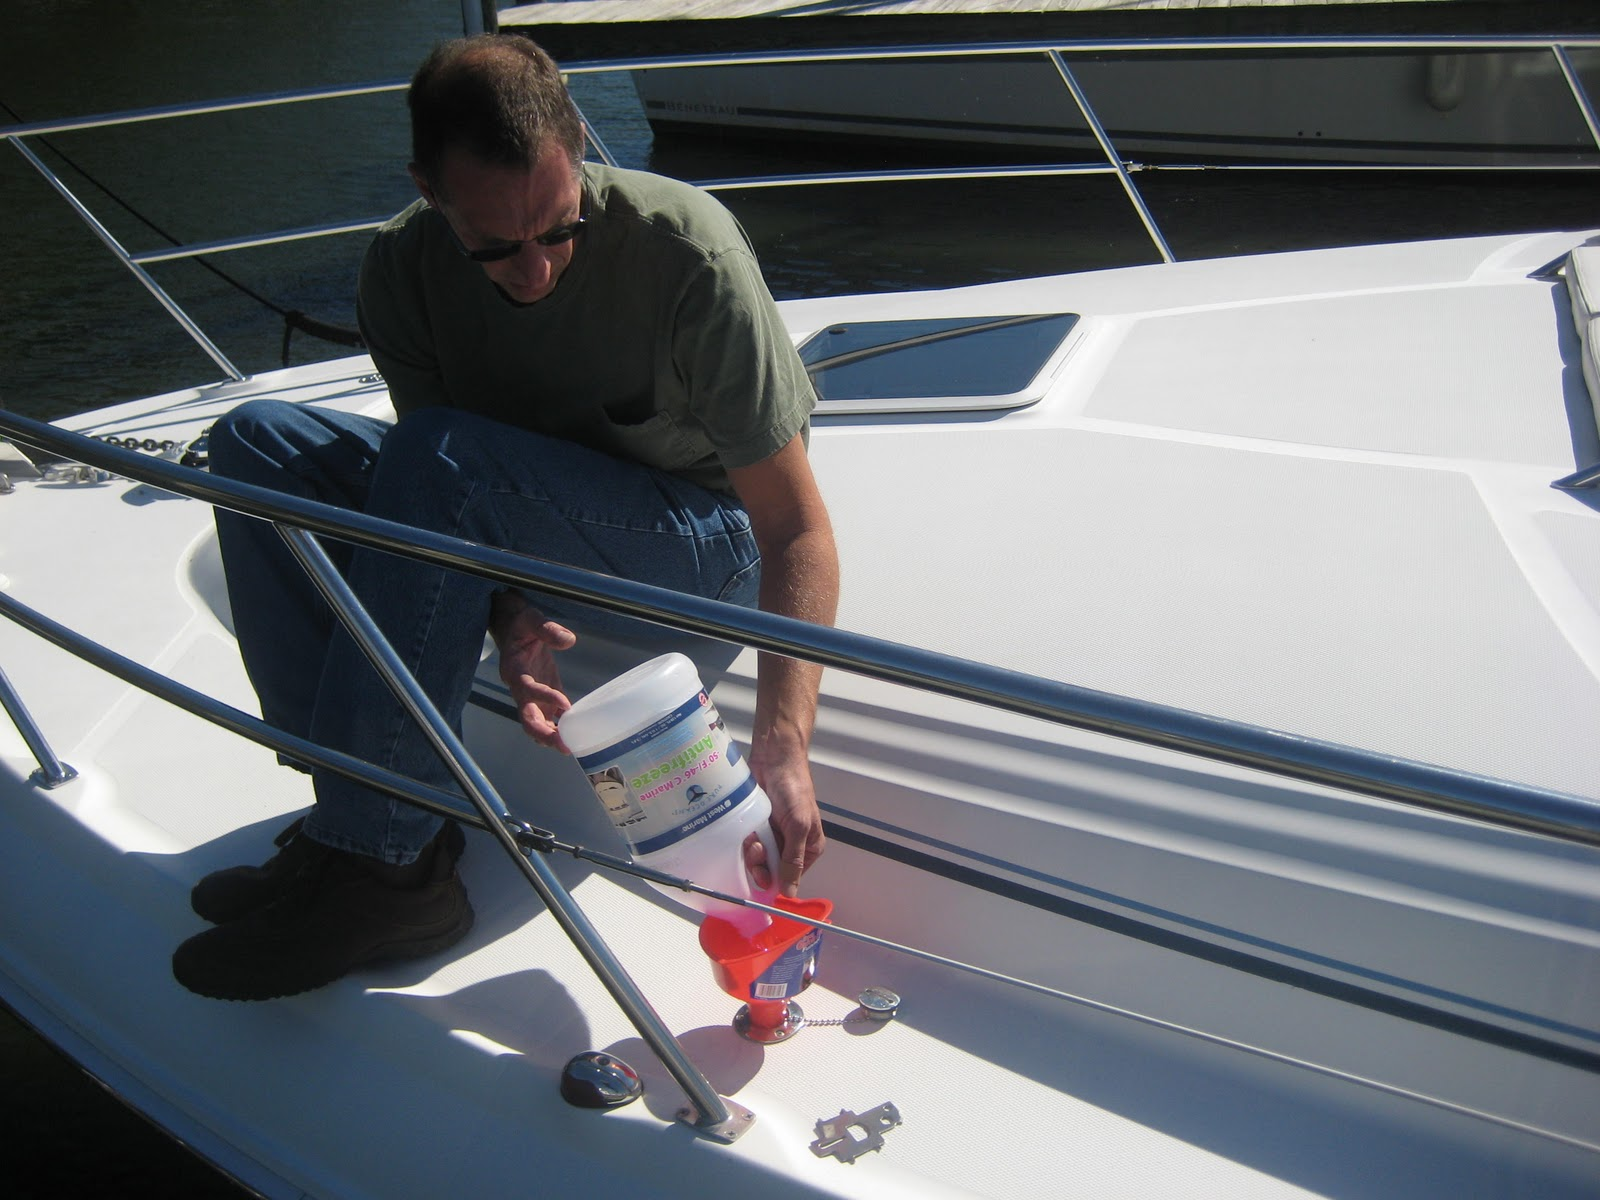 Winterize Your Boat Cabin Interior | My Boat Life